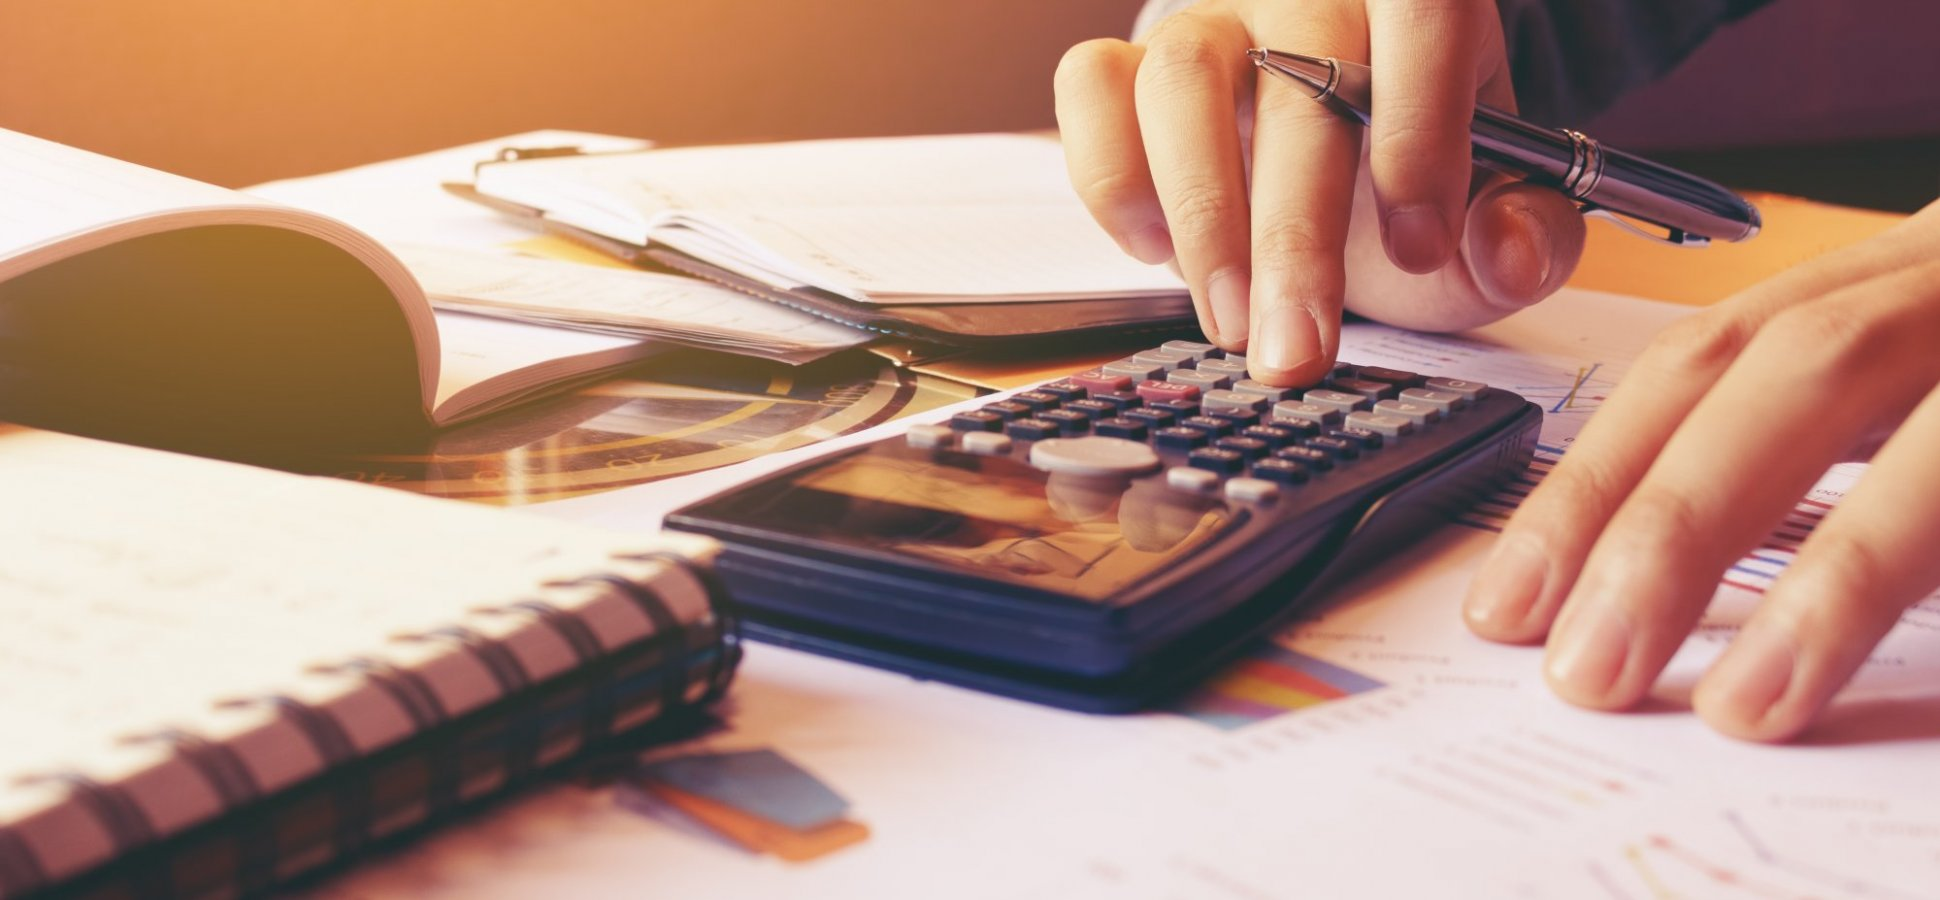 How to Know if You Should Use Personal Loans or Credit Cards to Consolidate Your Debt